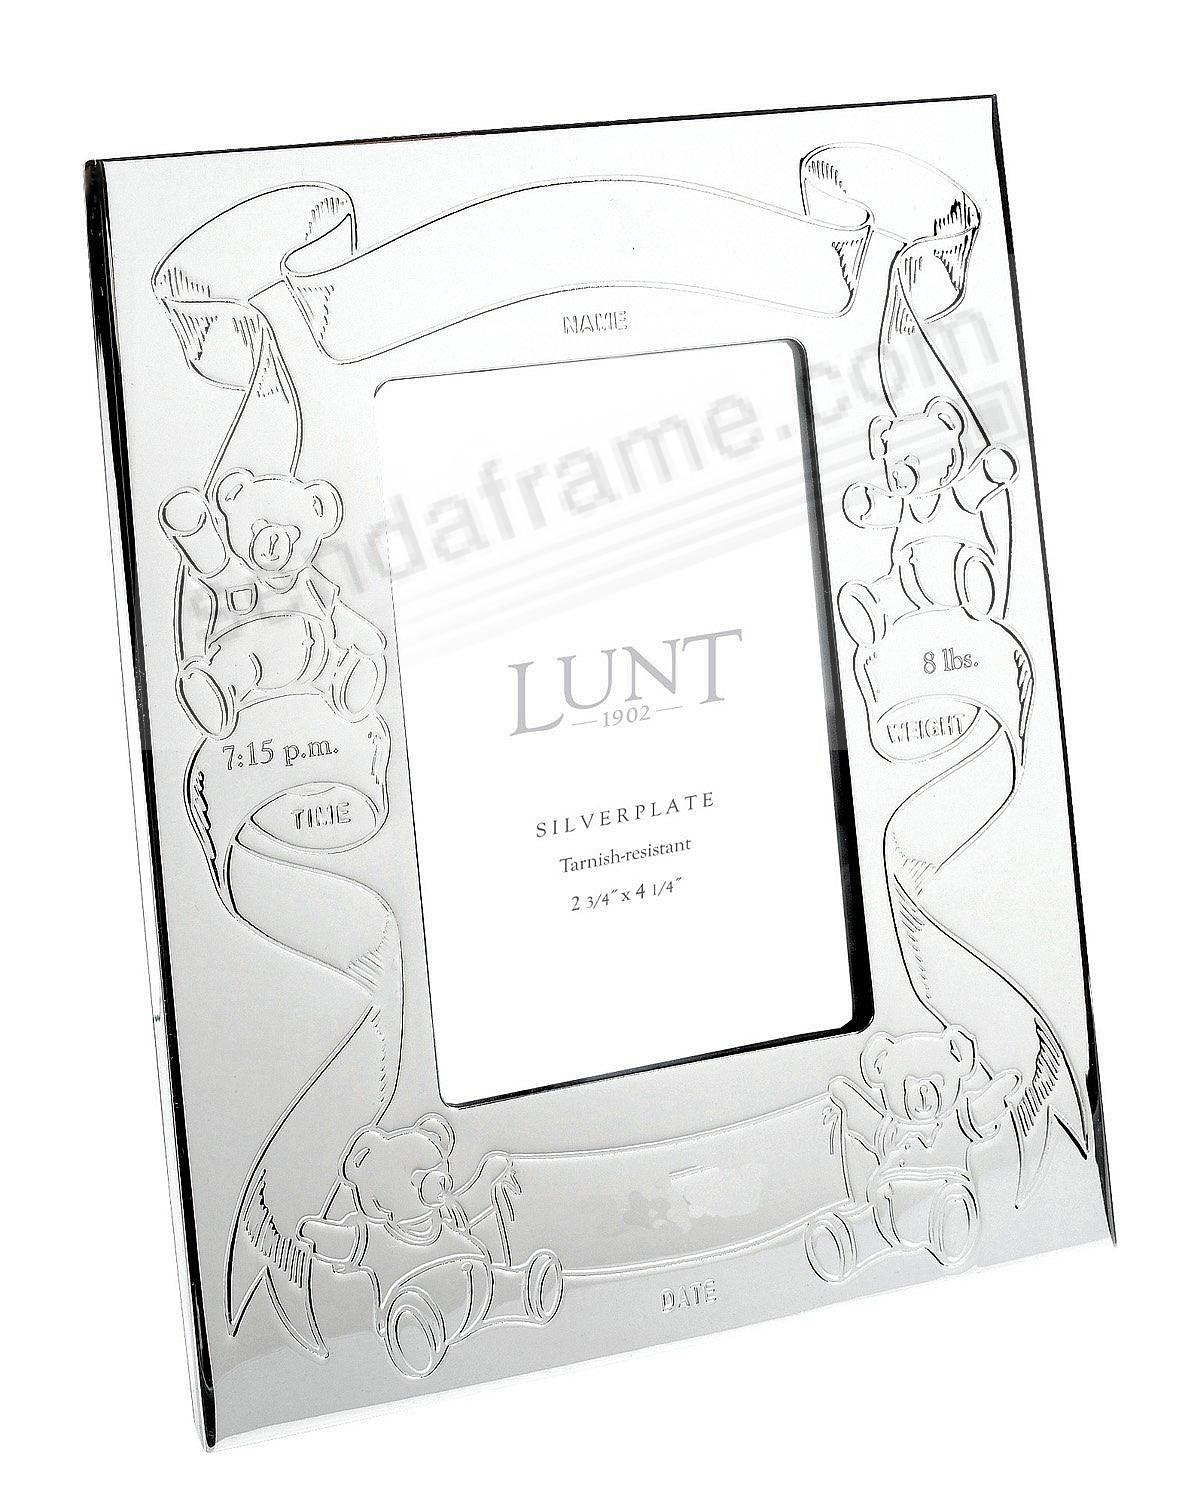 Silver Newborn Baby BIRTH RECORD by Lunt Silver - Picture Frames ...